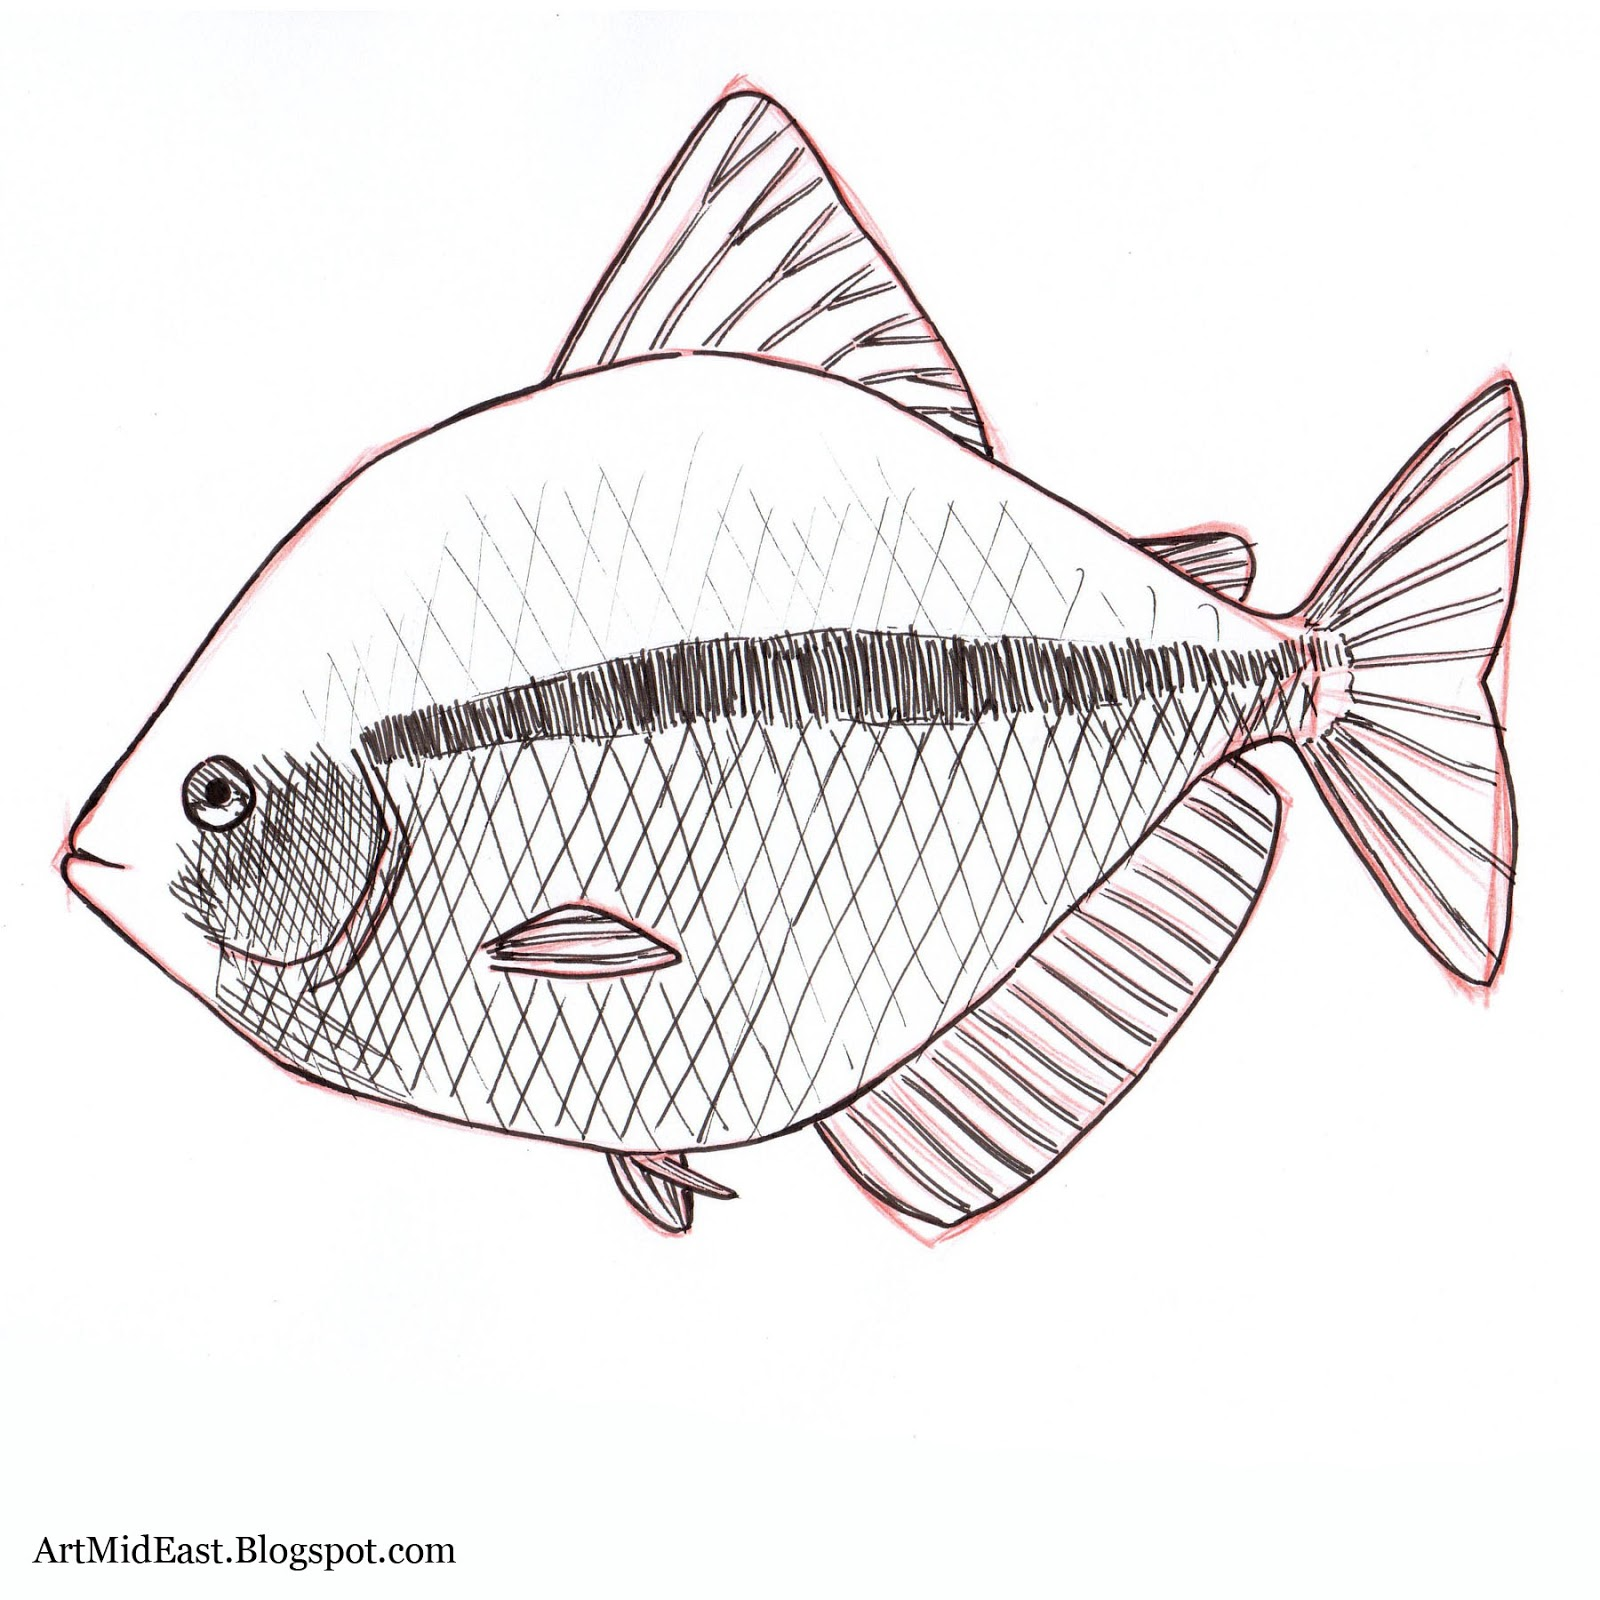 fishes drawing - photo #19